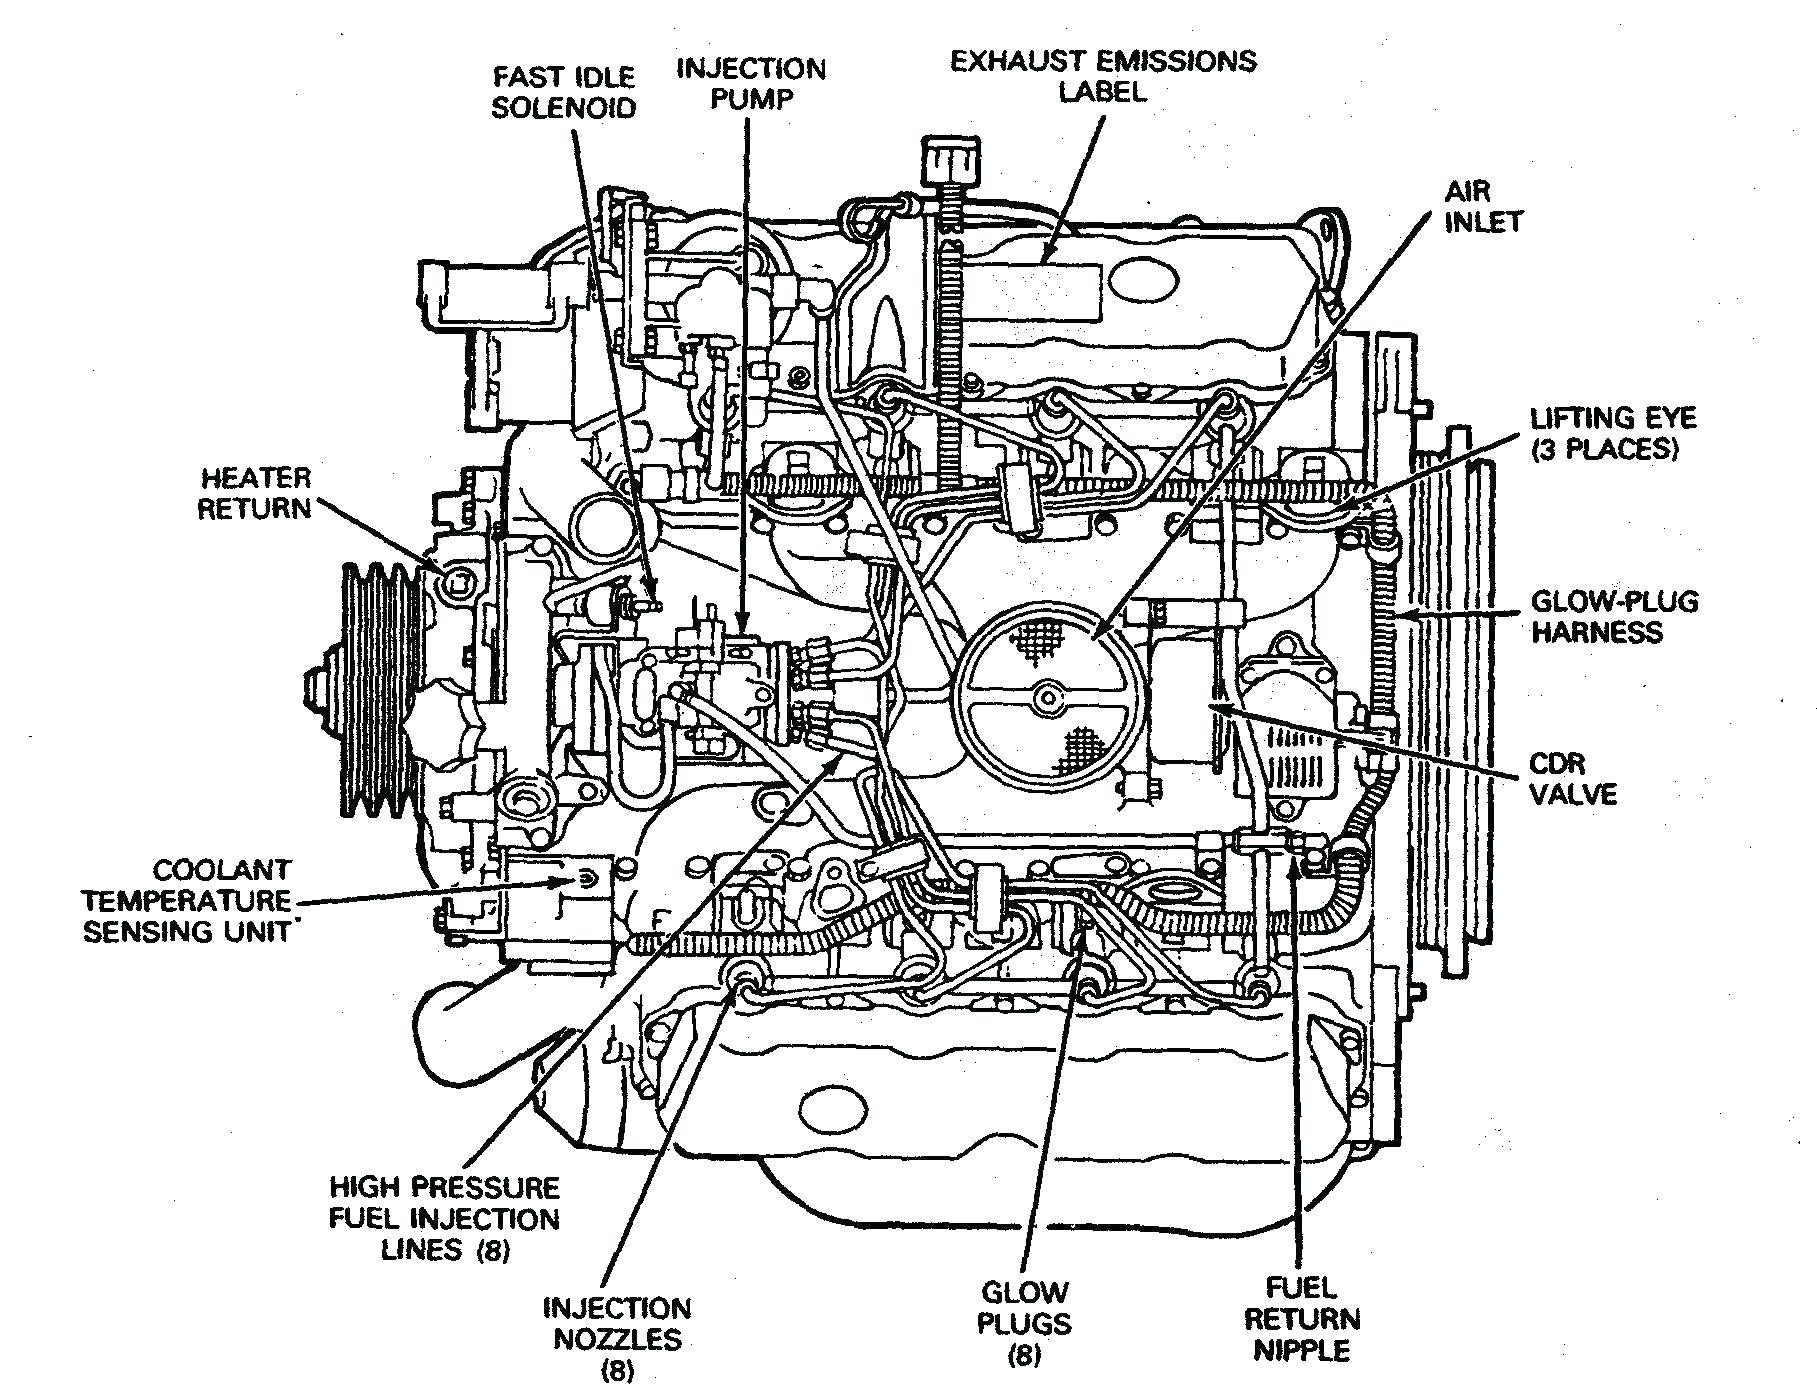 Bmw Engine Parts Diagram Kawasaki Engine Parts Diagram Delighted Inspiration Of Bmw Engine Parts Diagram